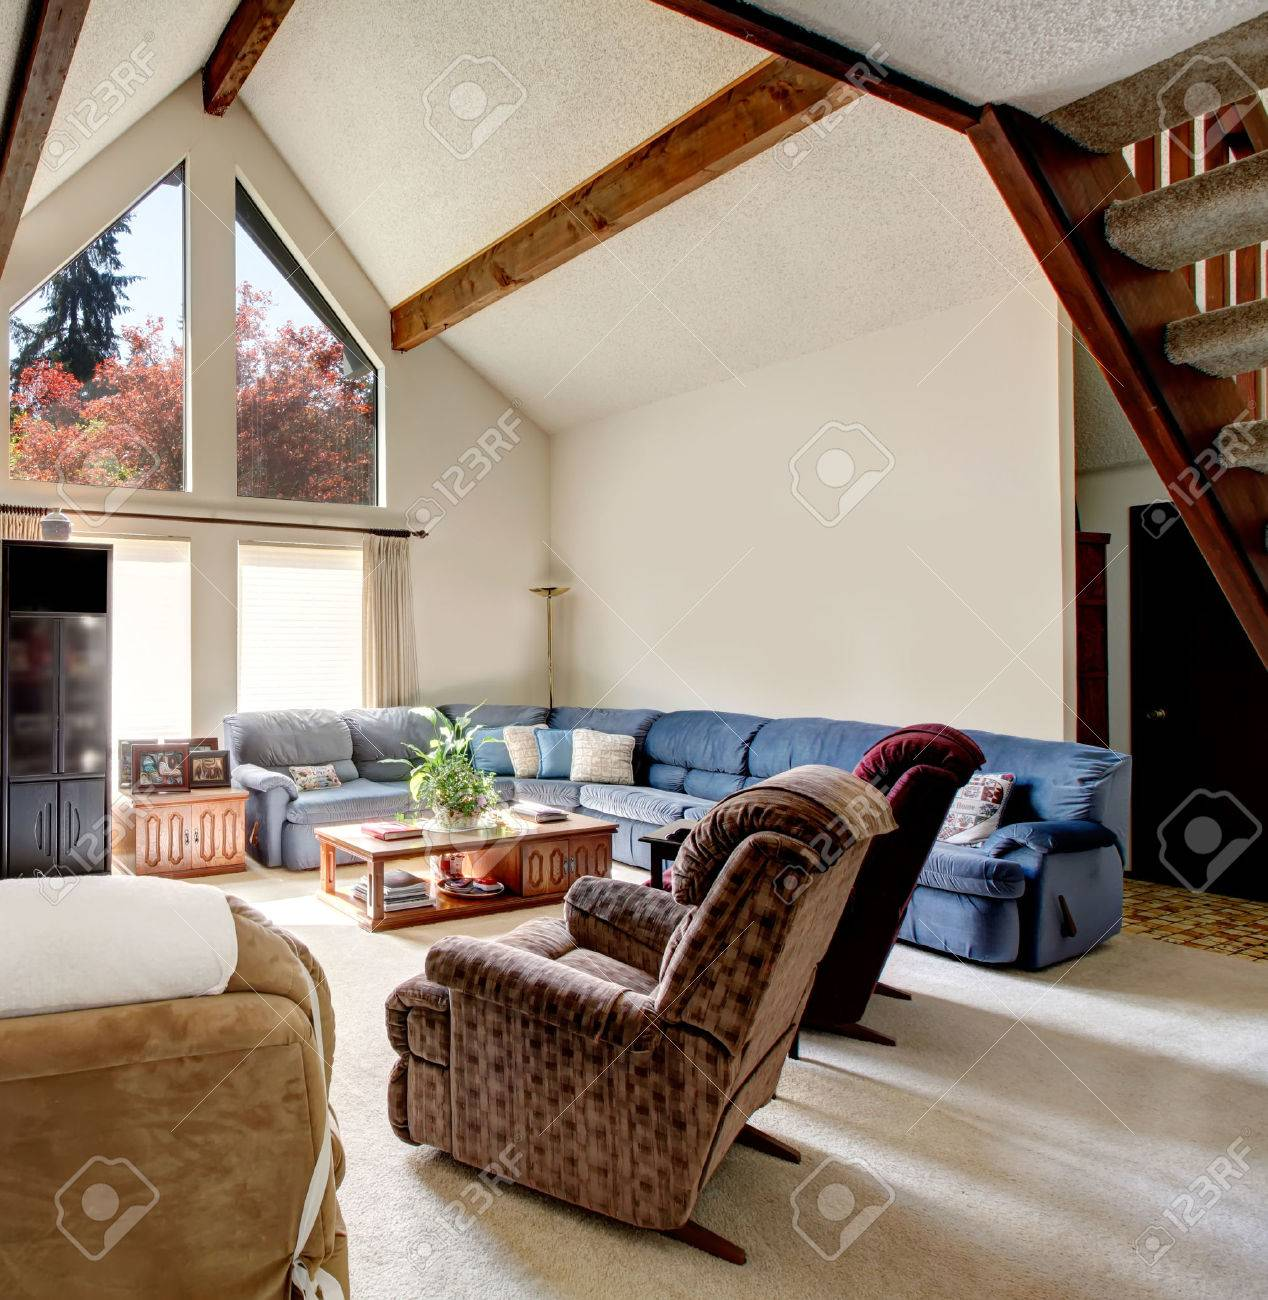 Bright Big Living Room With Vaulted Ceiling And Beams, Carpet ...